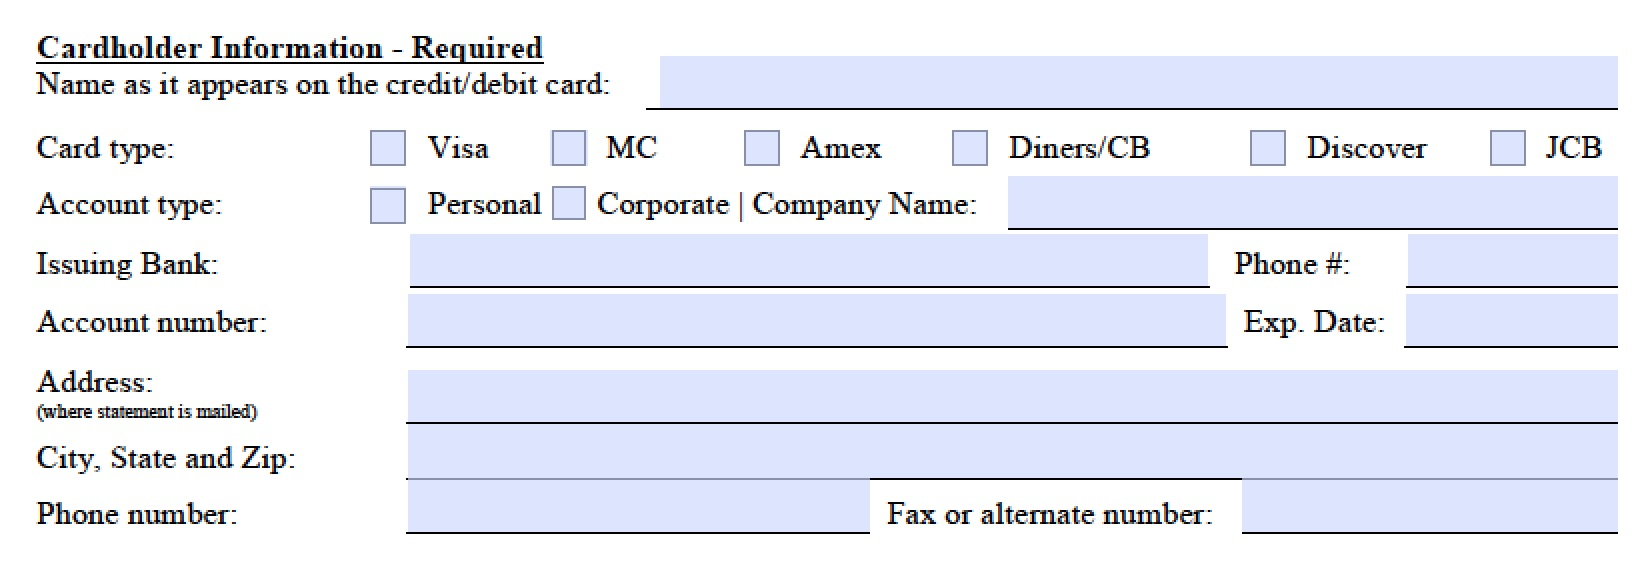 Credit Card Authorization Form Pdf Fillable | charlotte clergy coalition